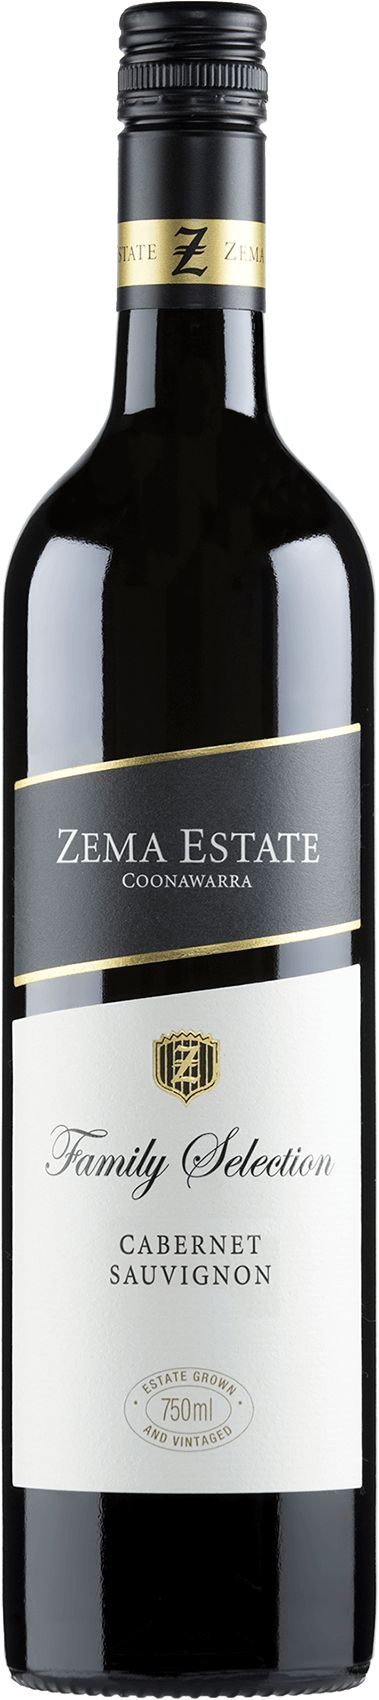 The family secret, this outstanding wine is produced in extremely limited quantities. It has all the characteristics of a classic Coonawarra Cabernet Sauvignon; concentrated fruit flavours, fuller style, rich palate and excellent balance. It is perfect for long term cellaring where its firm structure will blossom with age.